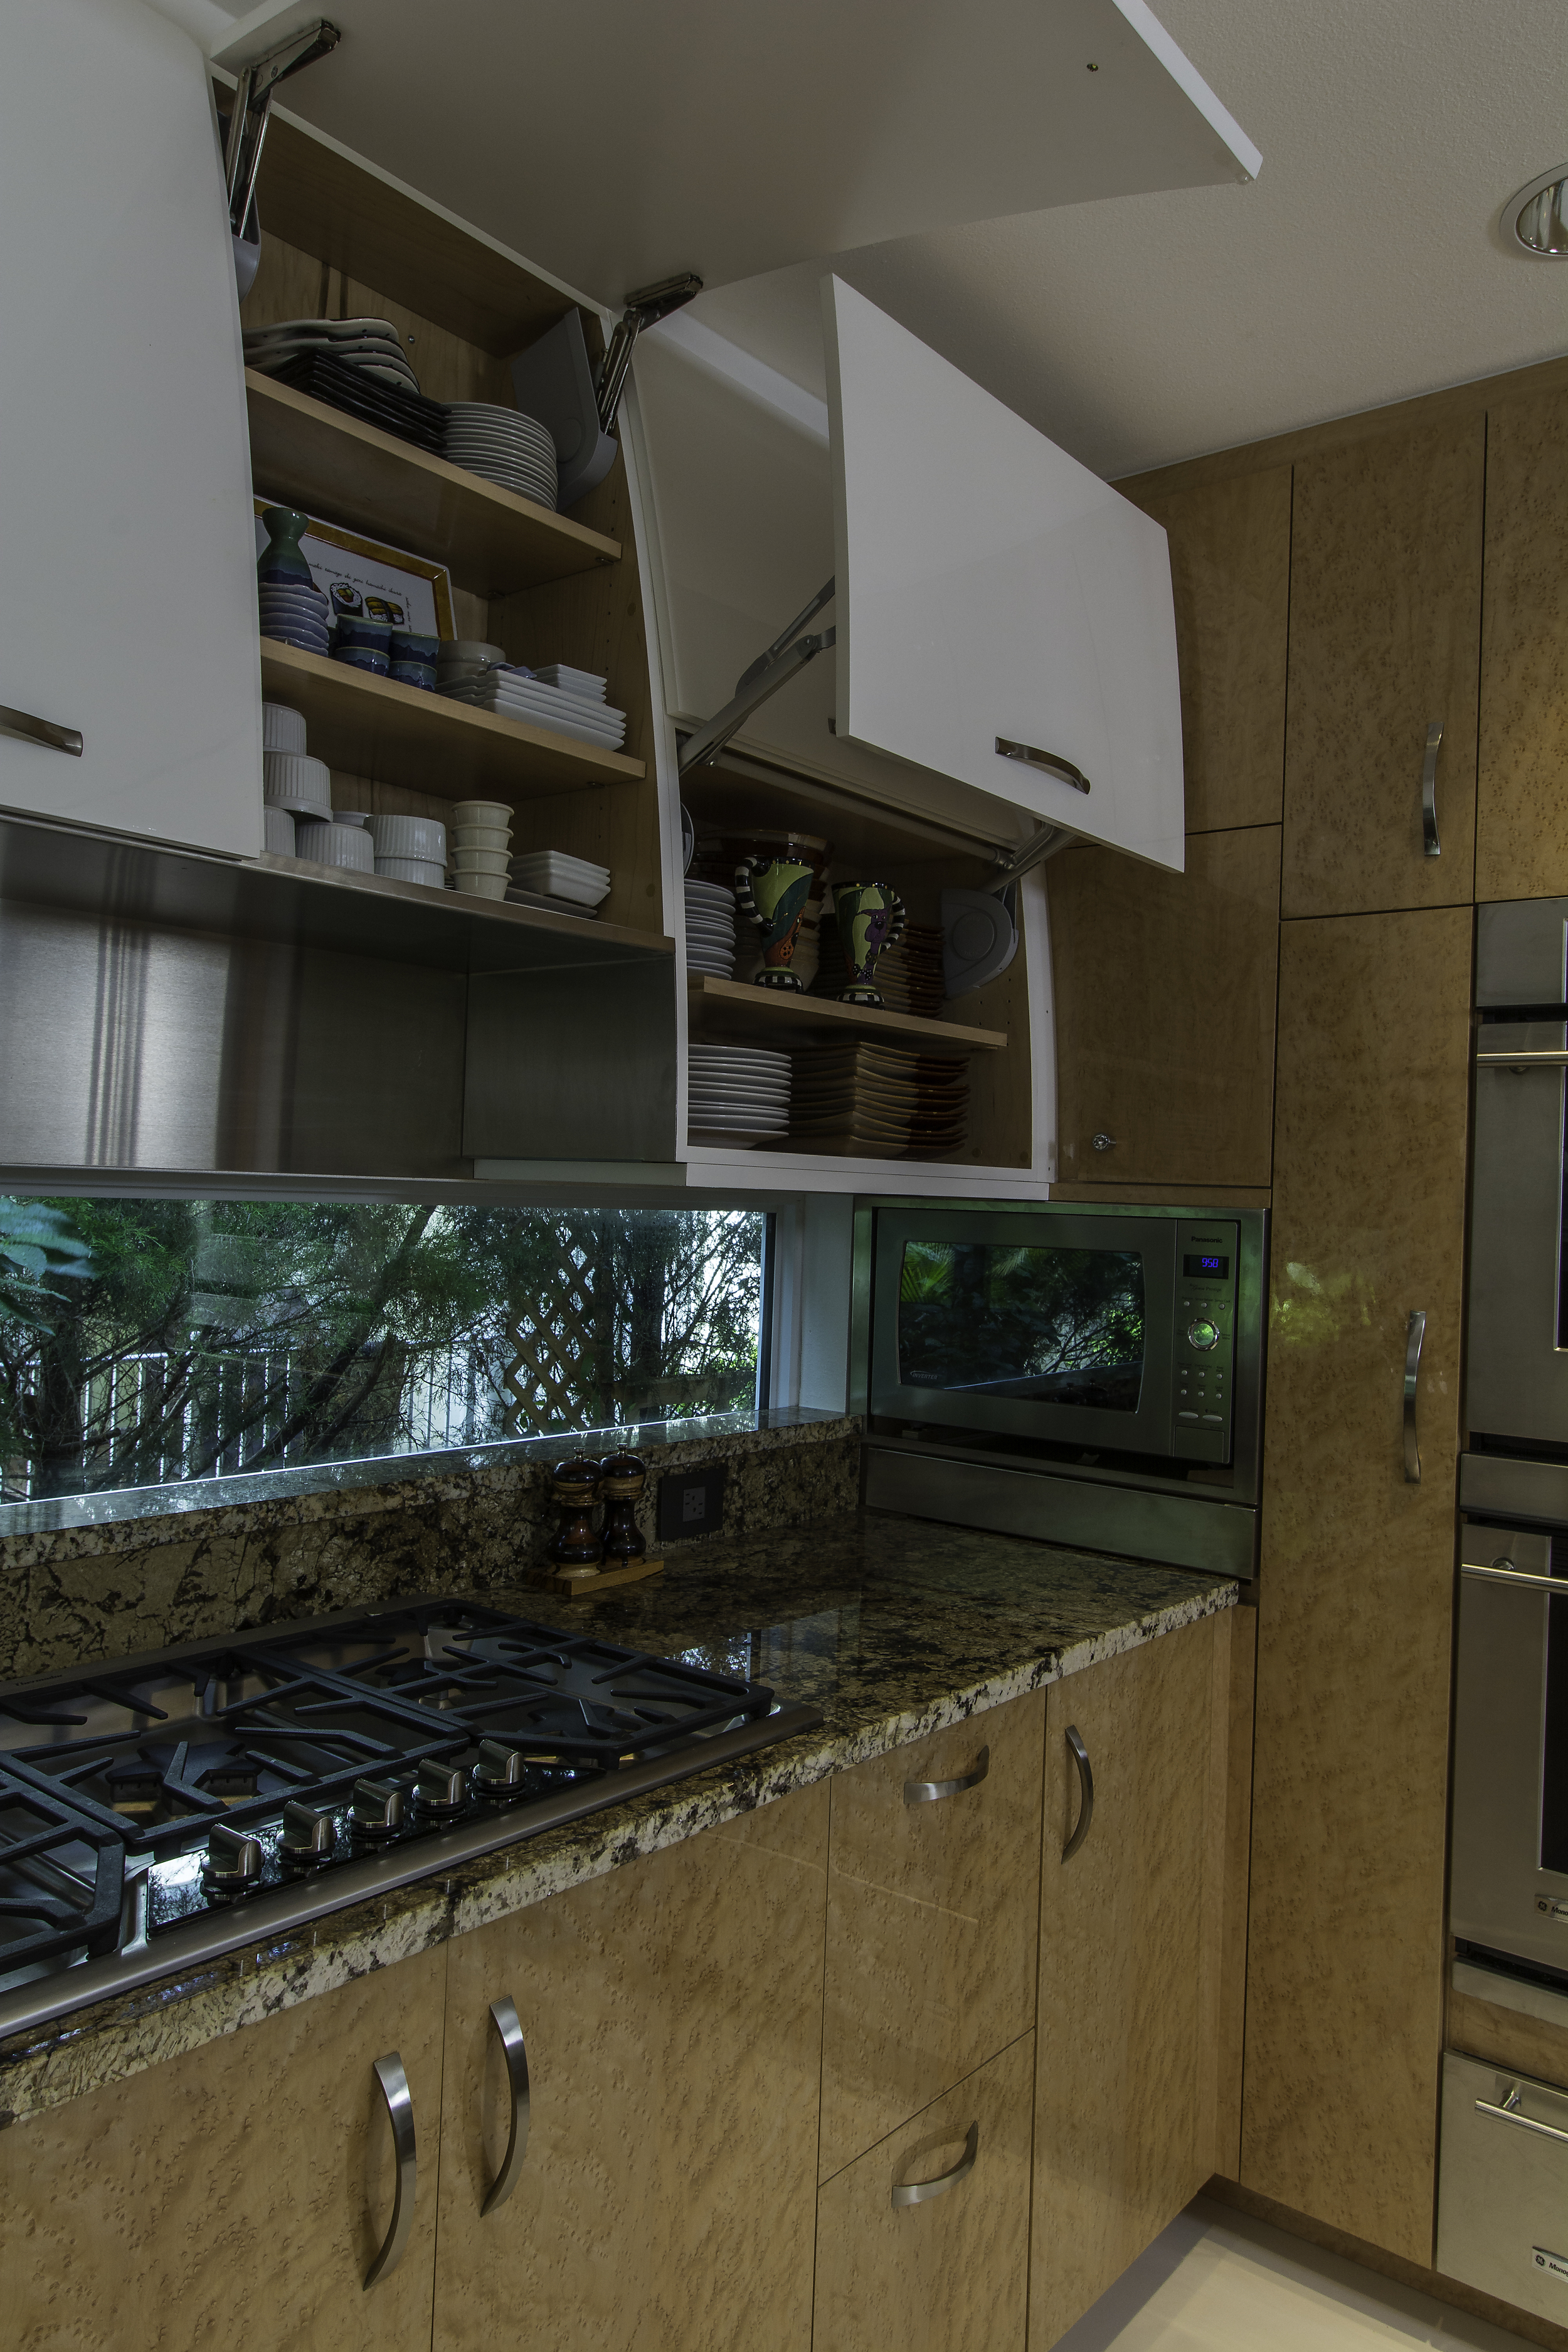 Kitchen hob and cupboards3.jpg